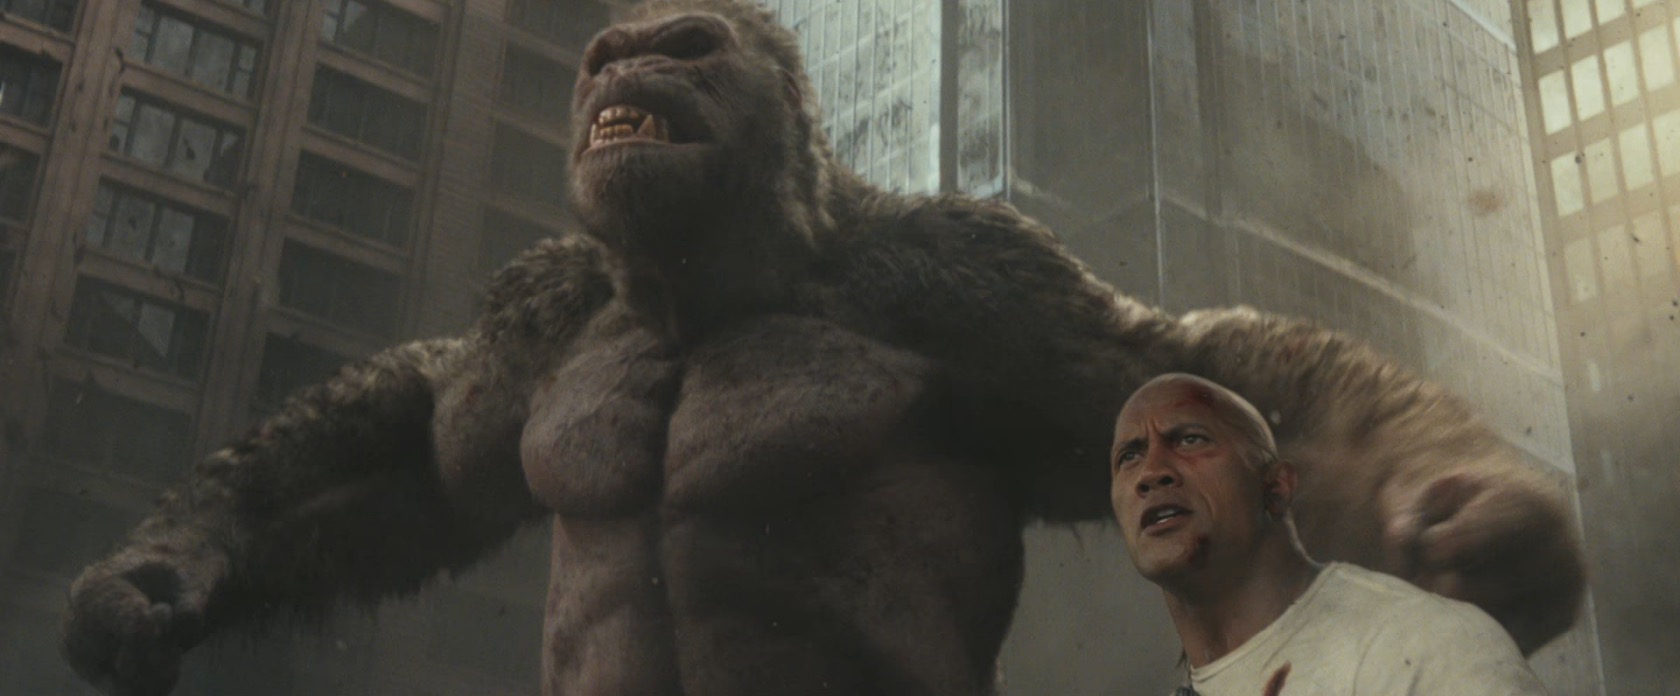 Rampage Poster Aligns George With Dwayne The Rock Johnson